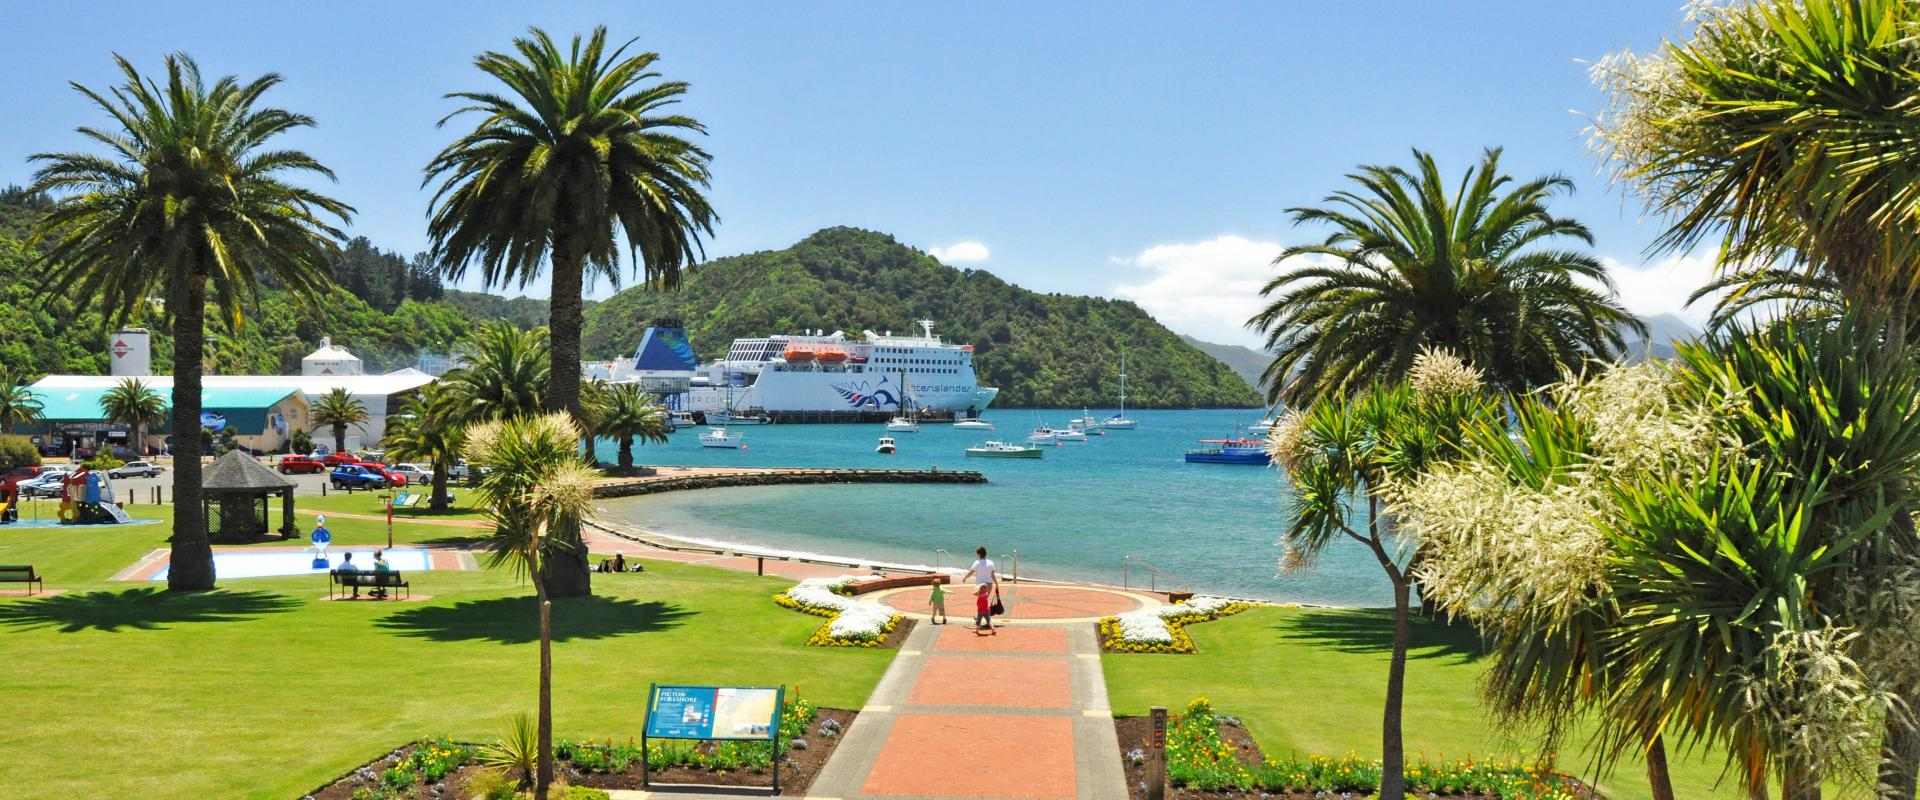 Enjoy the picturesque Picton Foreshore